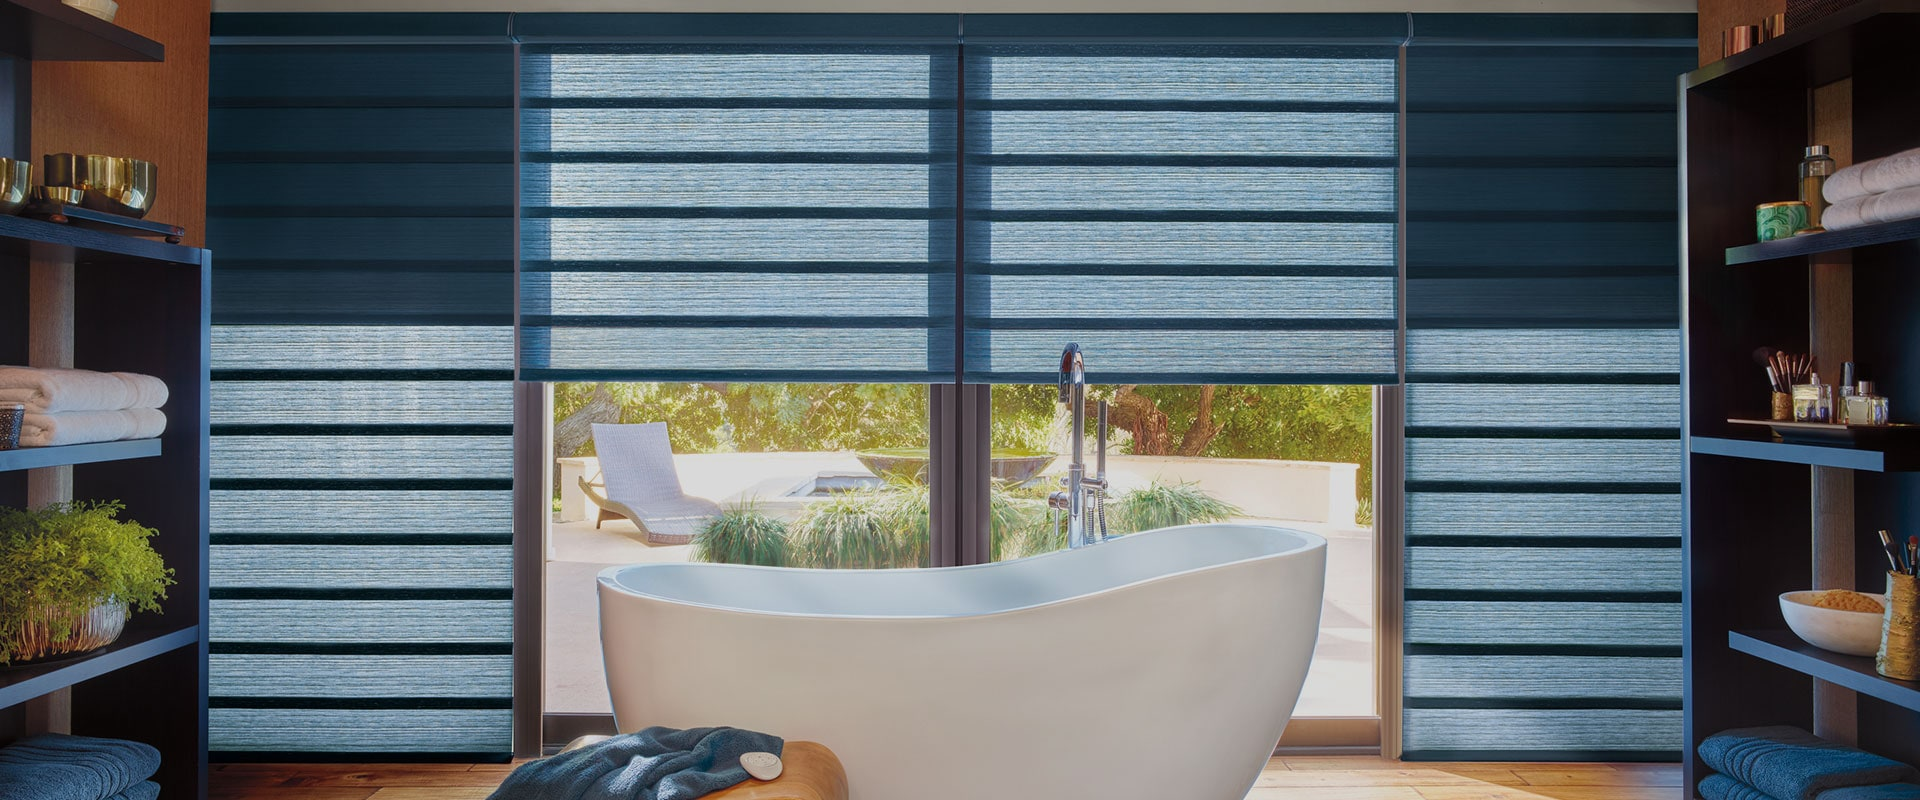 Bathroom with Roman Shades - Vignette Duolite